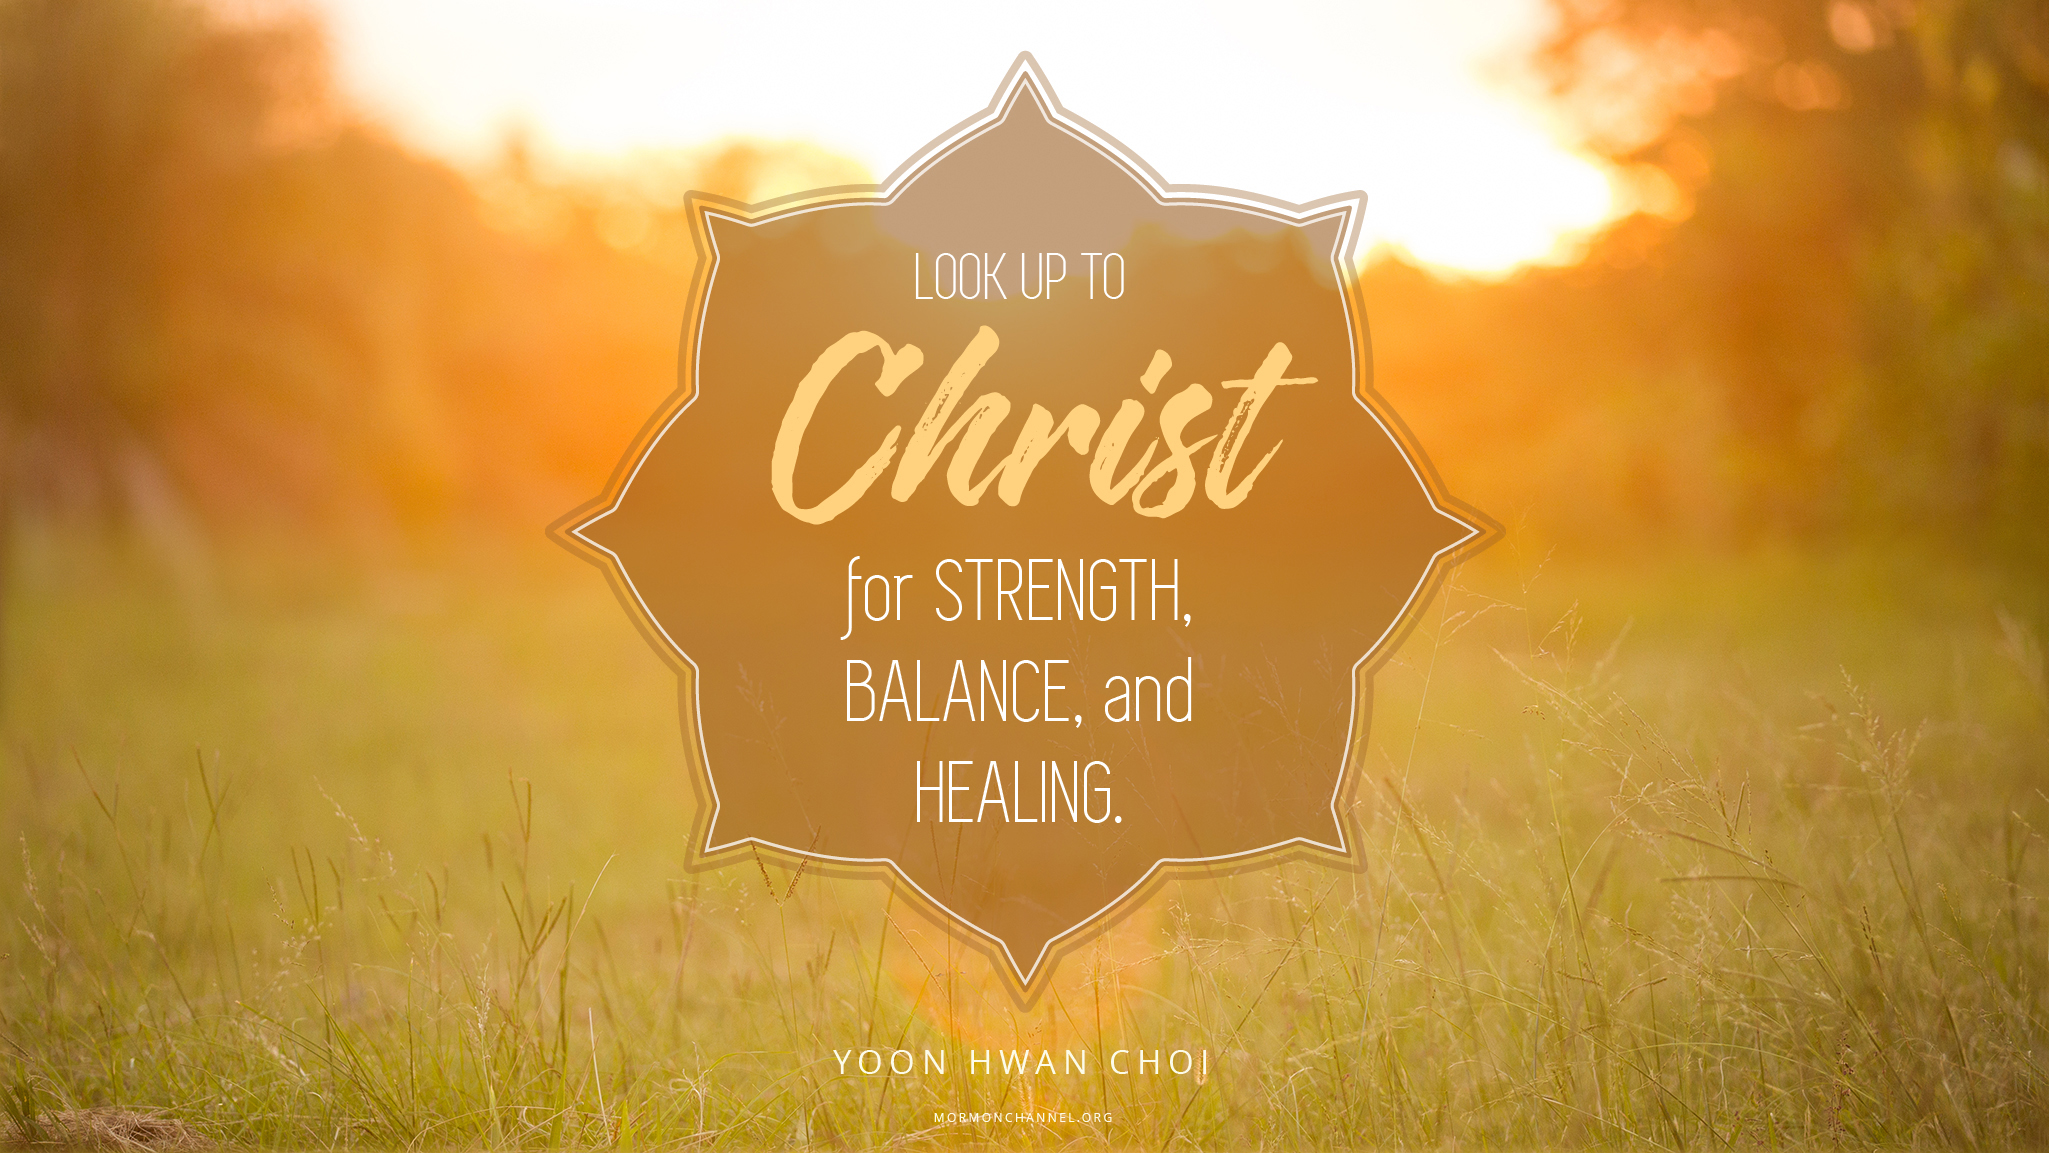 Daily Quote: Look Up To Christ